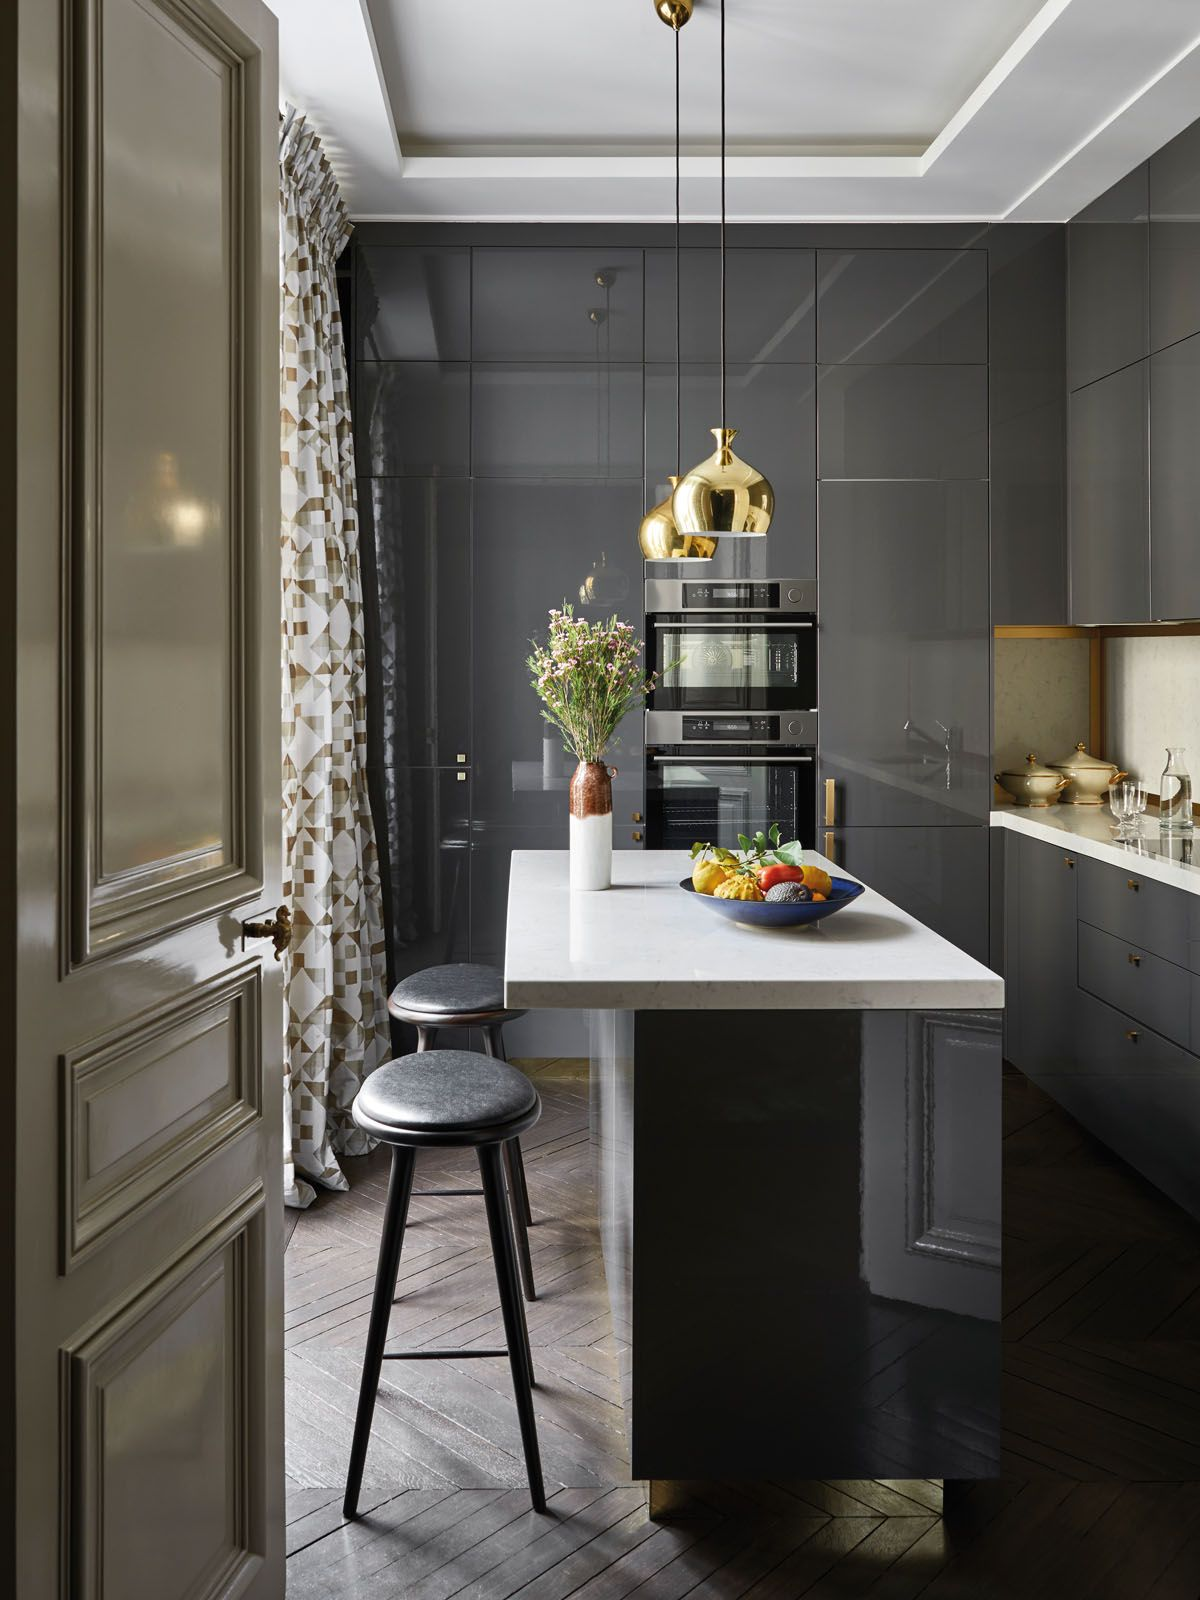 champeau and wilde Champeau and Wilde Create Bring Modern Design To This Paris Apartment Champeau and Wilde Create Bring Modern Design To This Paris Apartment 7